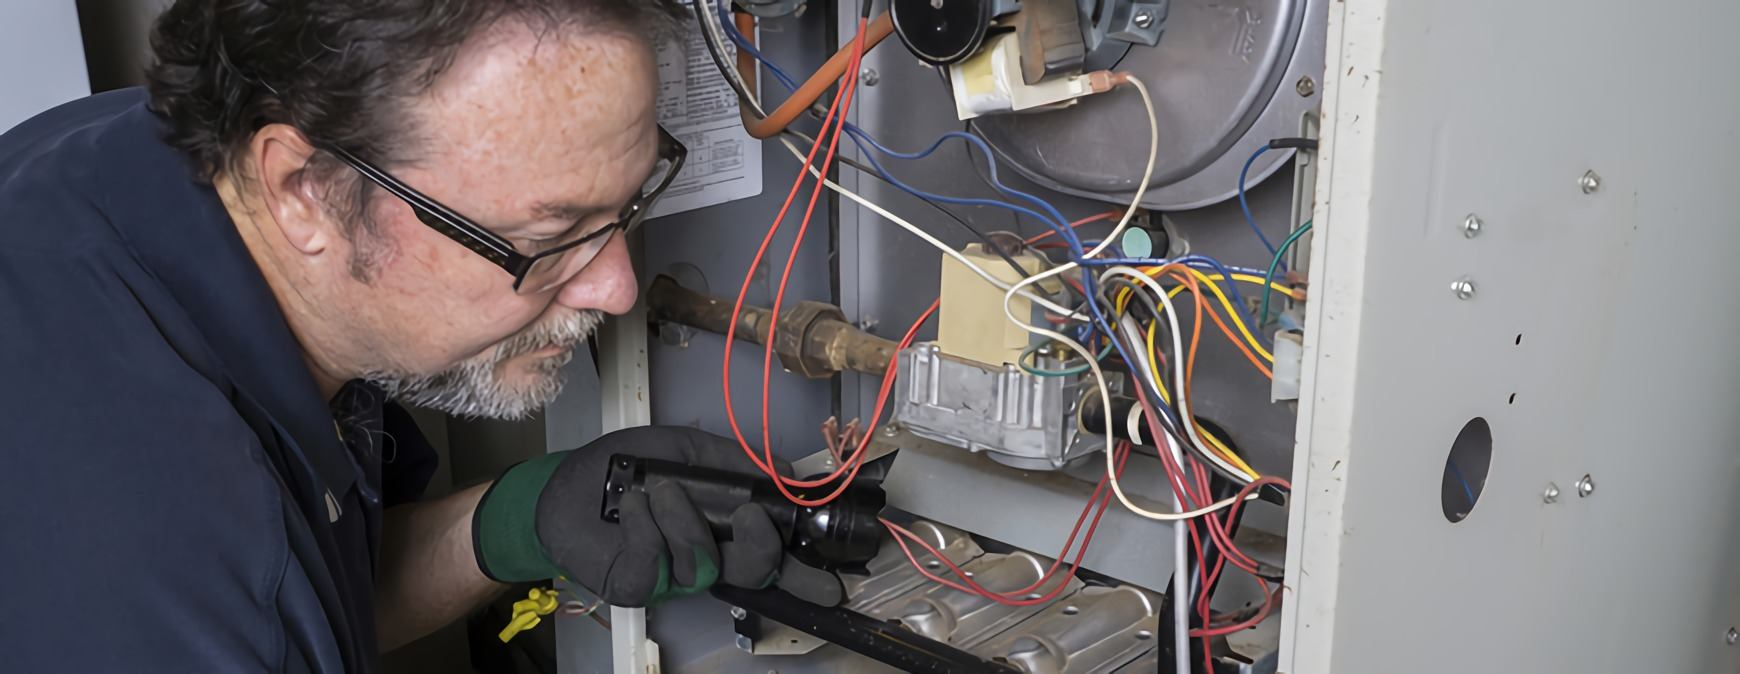 An Overview of HVAC Technicians and Electricians - Refrigeration ...